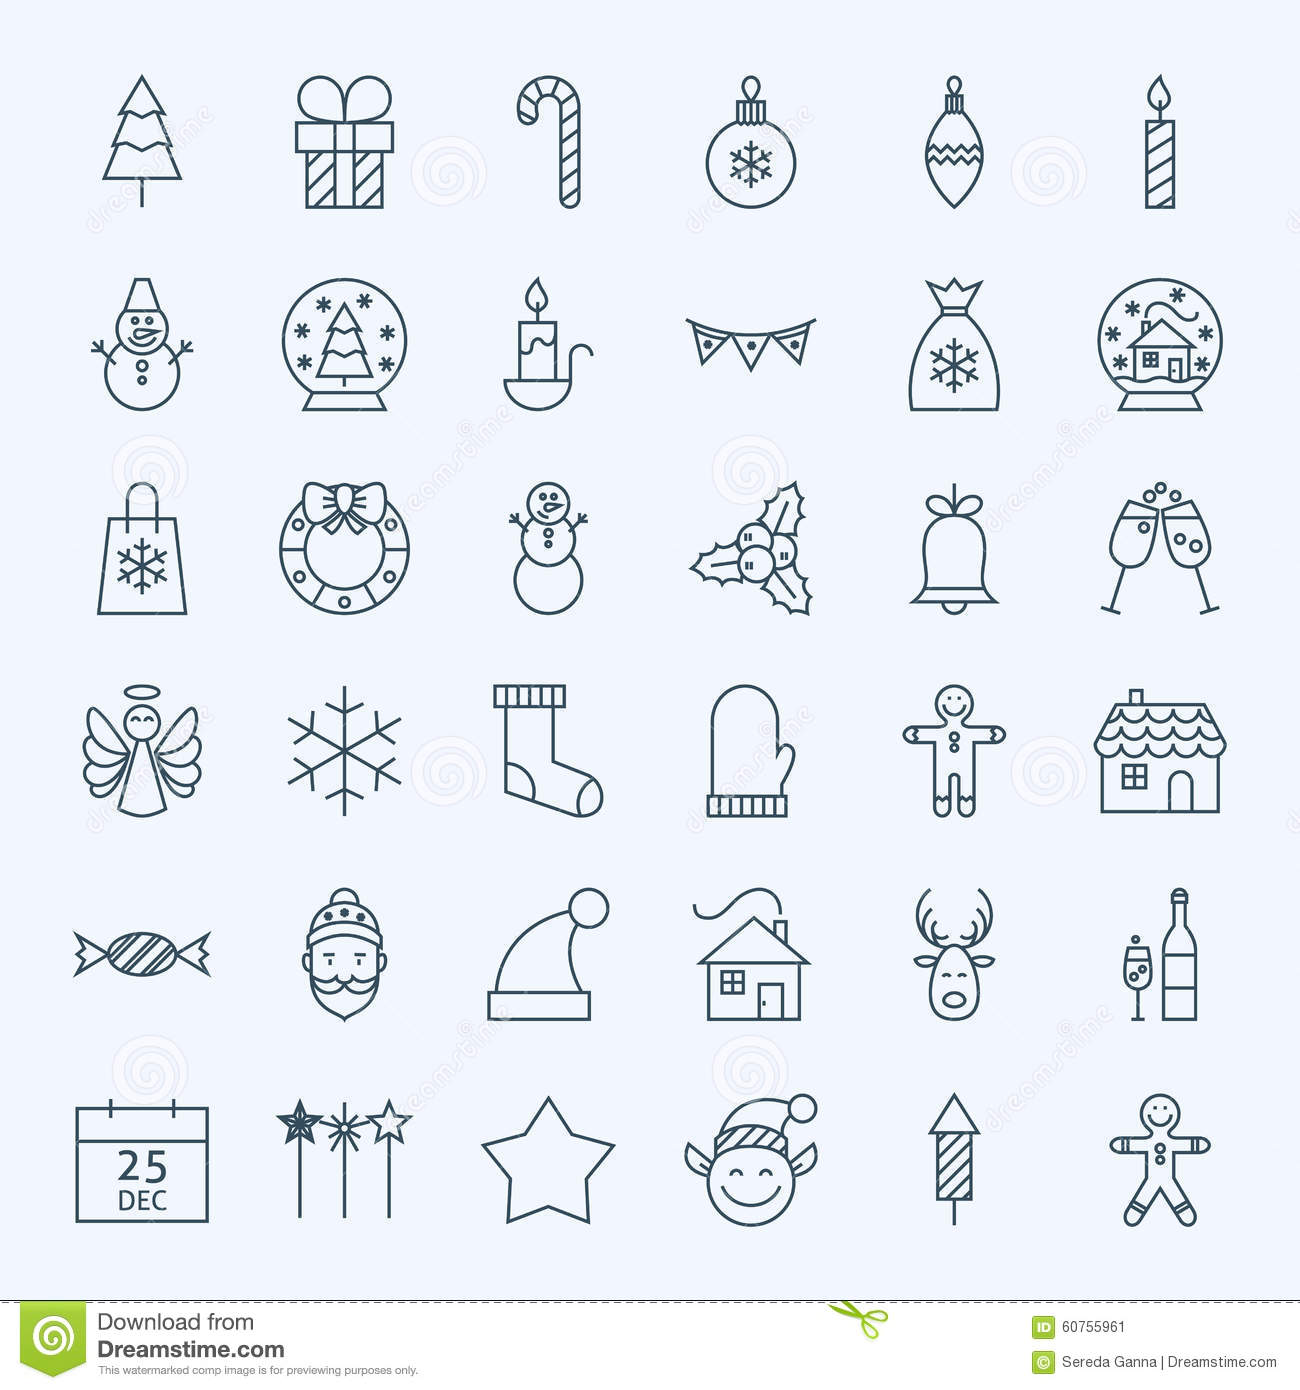 Vector Set of 36 New Year Holiday Modern Line Icons for Web